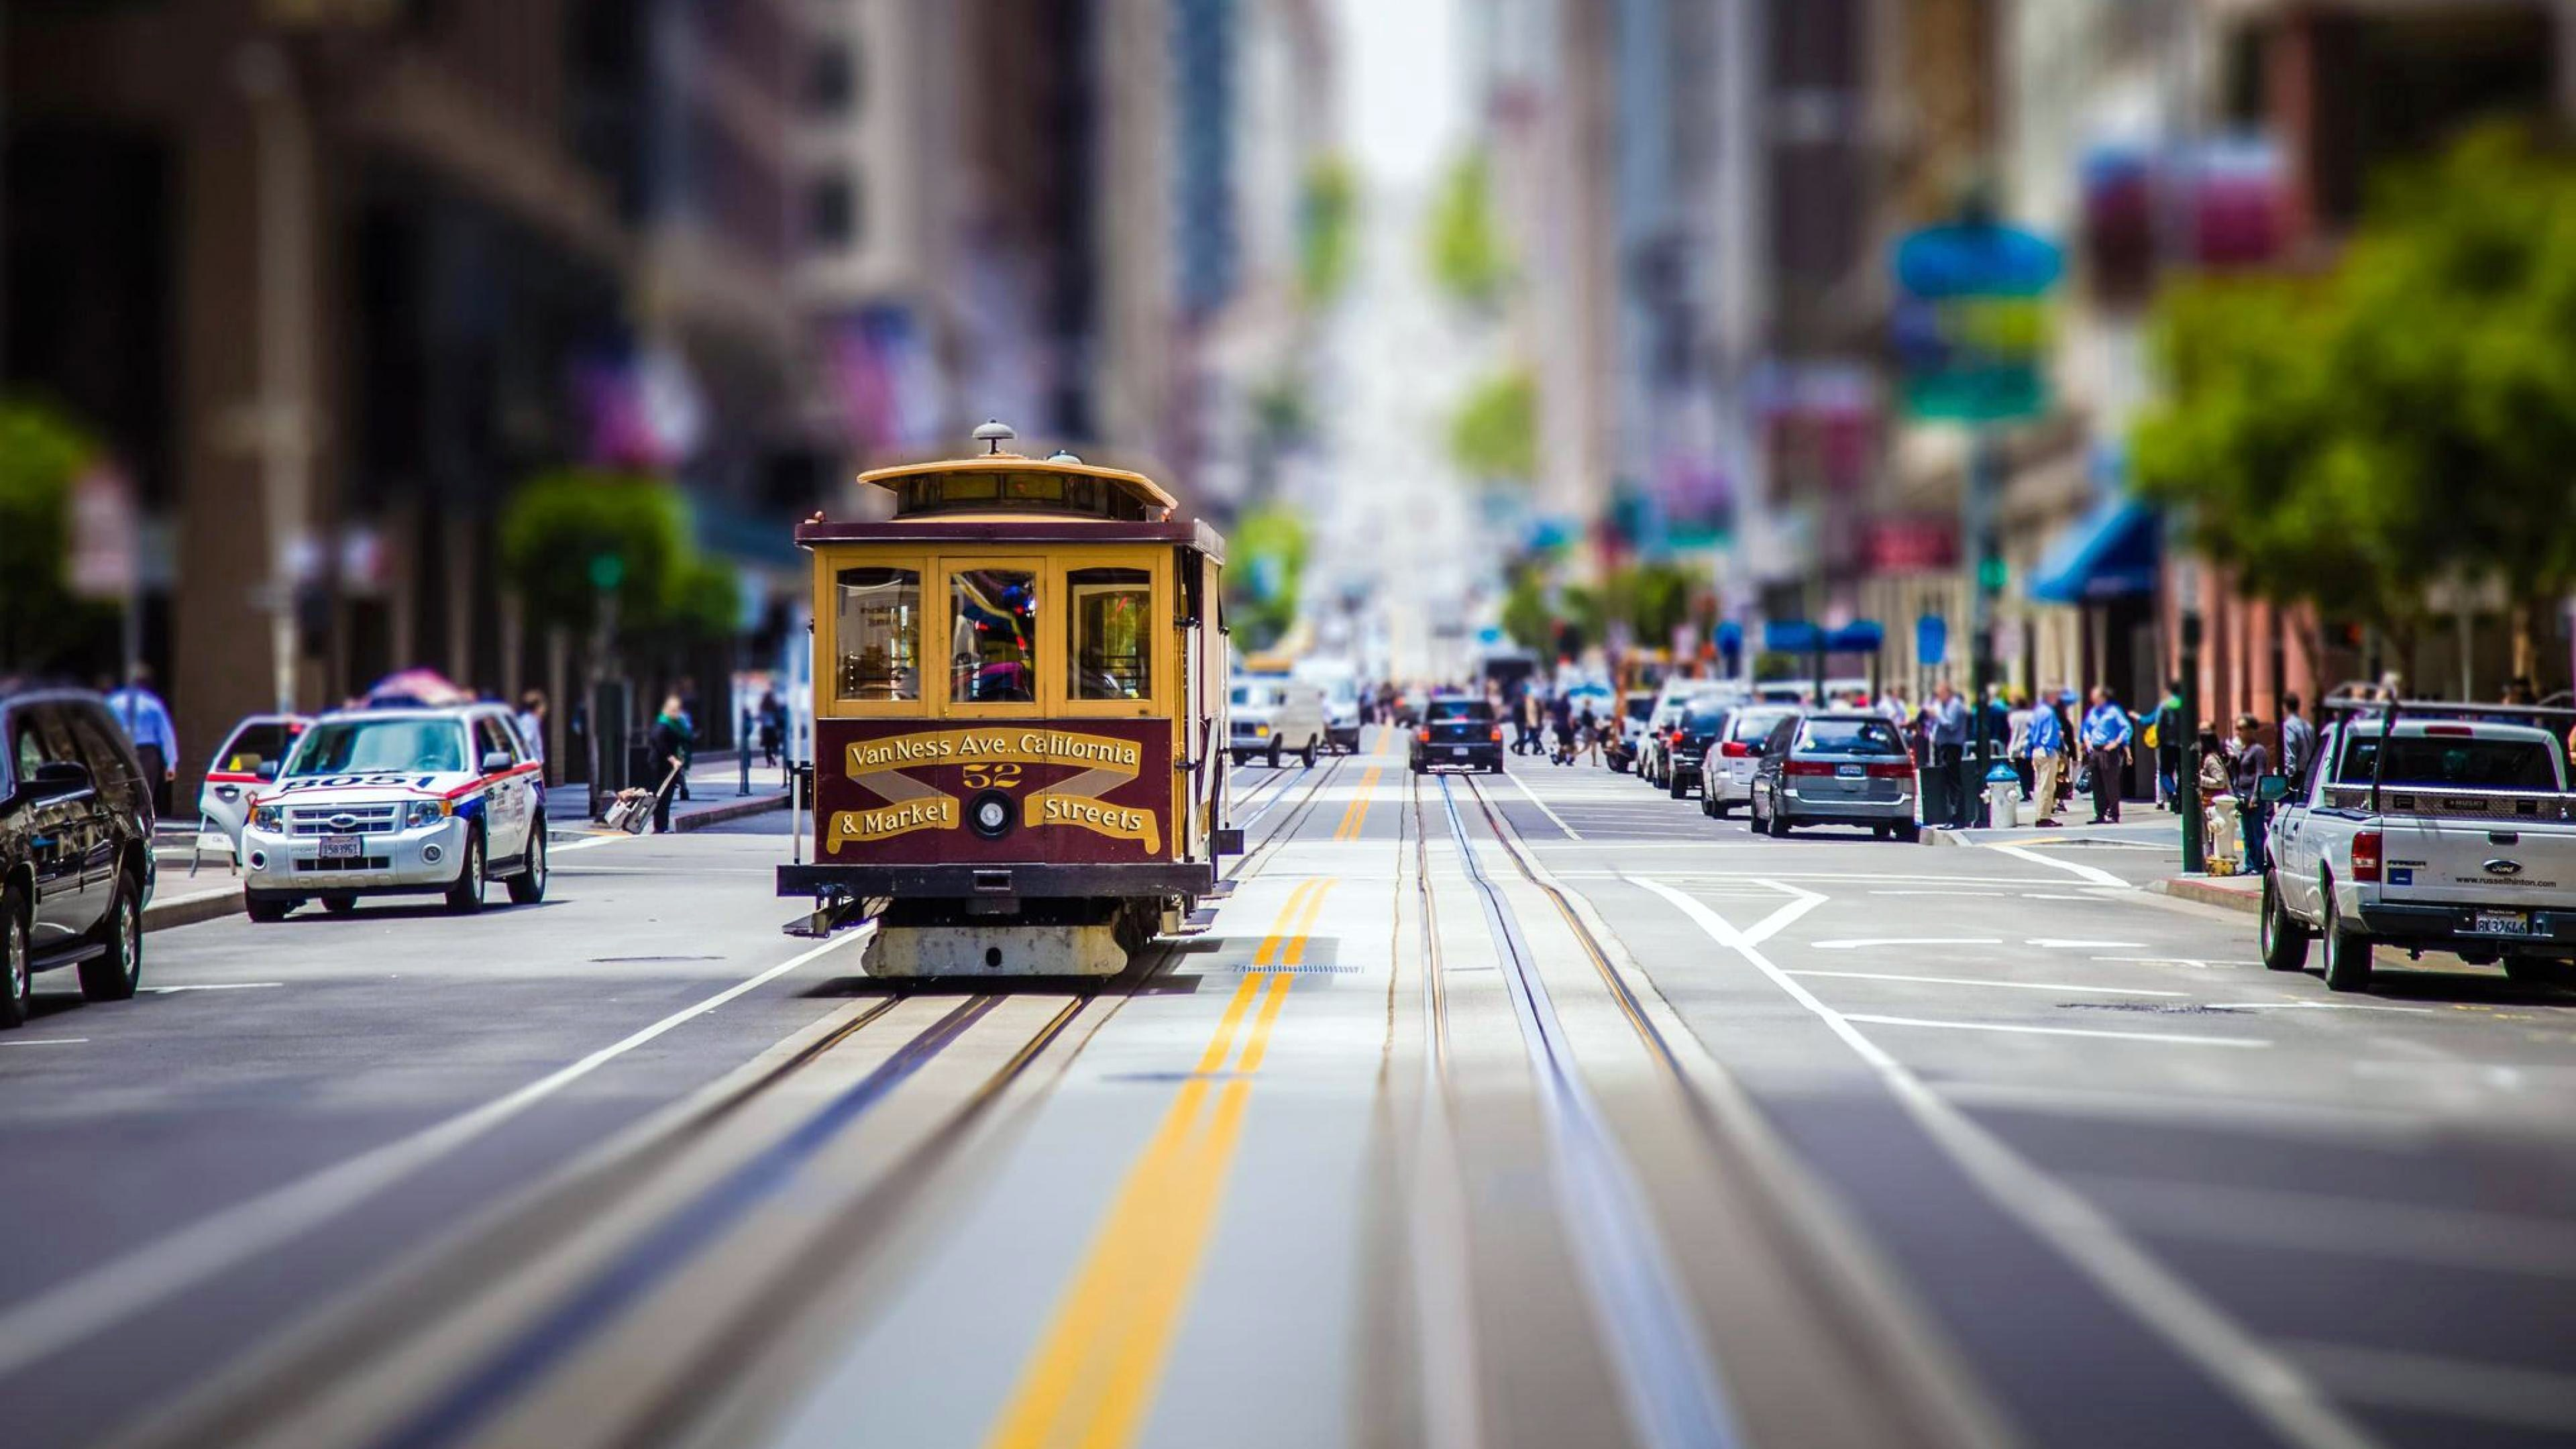 san-francisco-4k-hd-wallpapers-unabuenaidea.es (7)